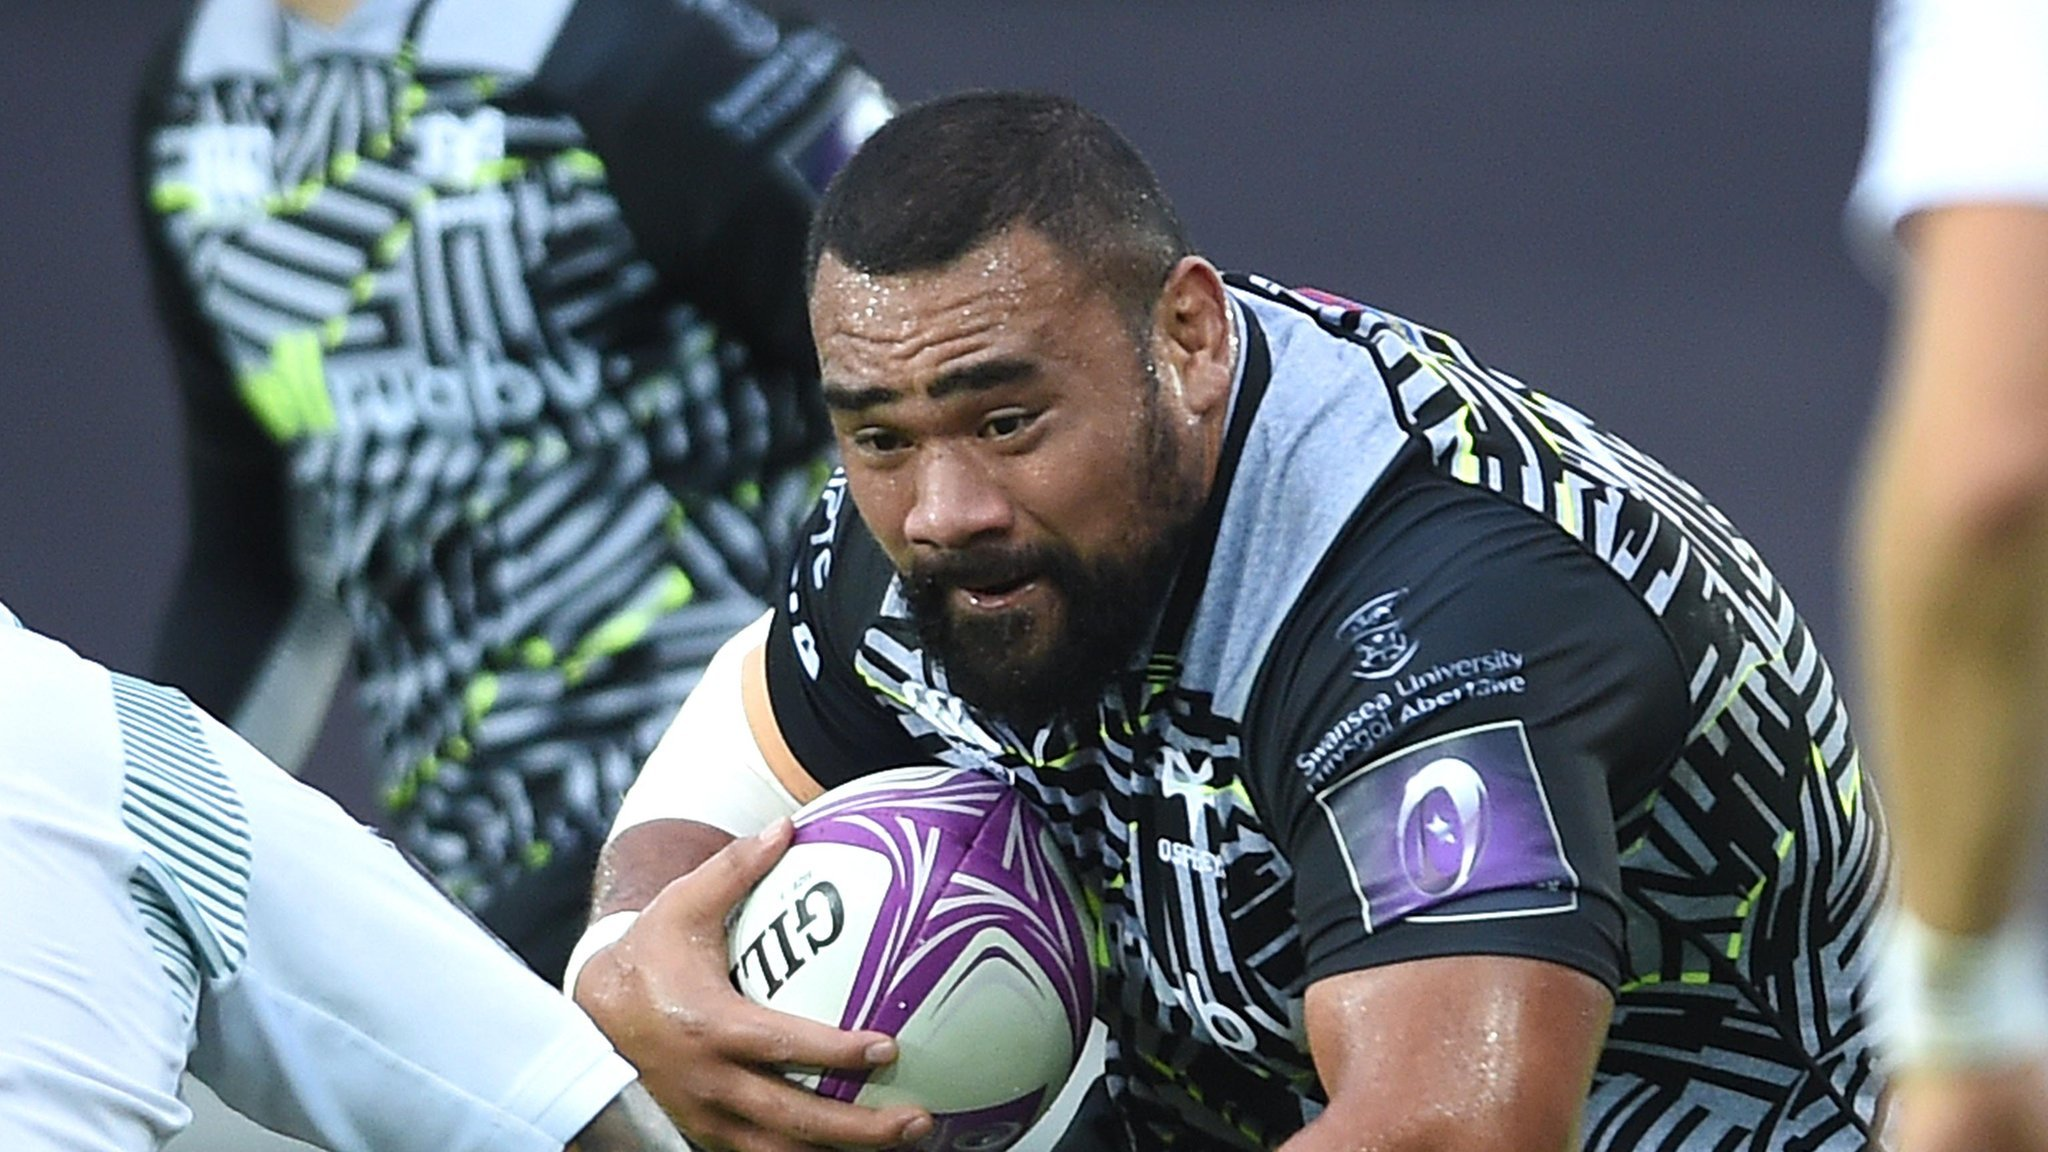 Ospreys forward Fia hoping for Tonga debut against Wales